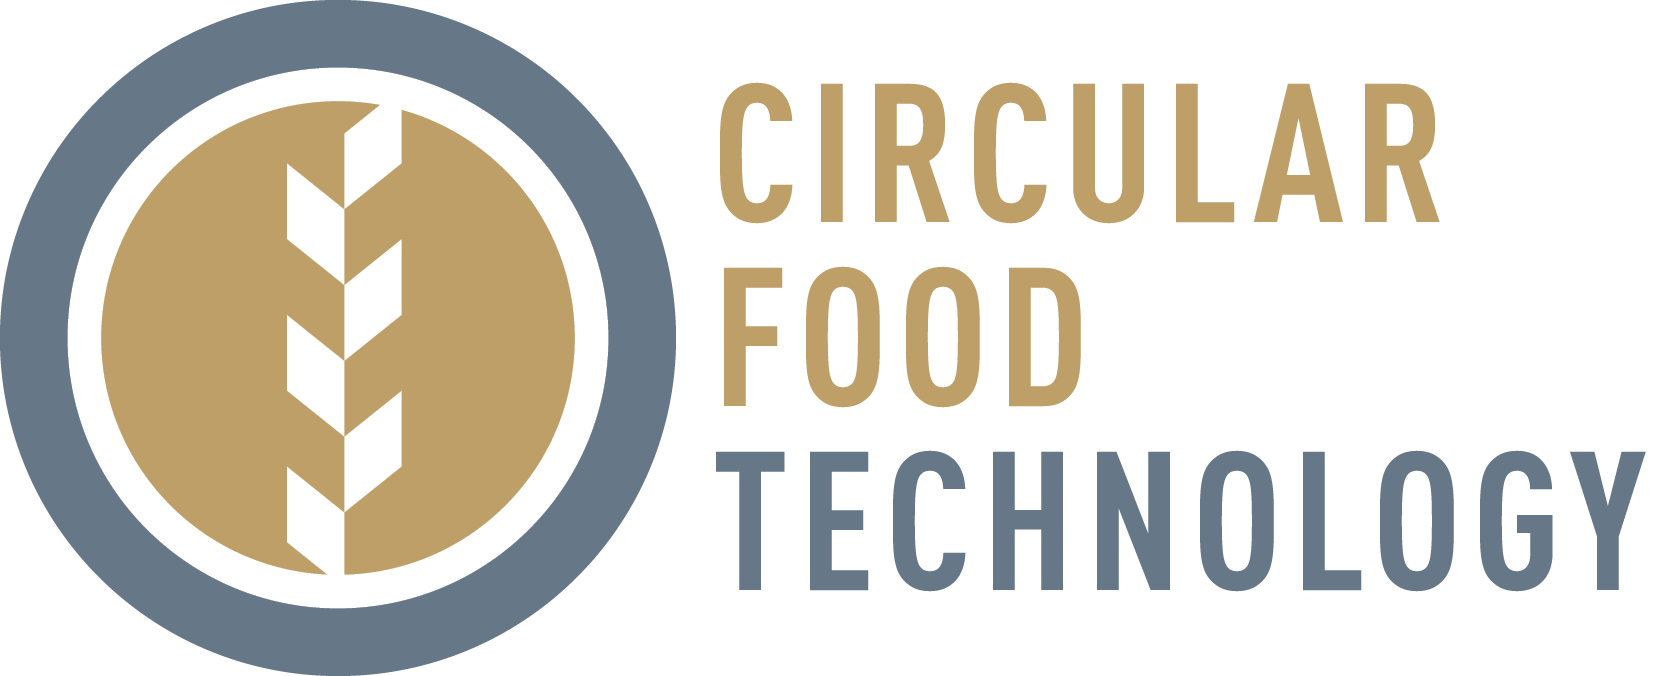 Circular-food-technology-logo